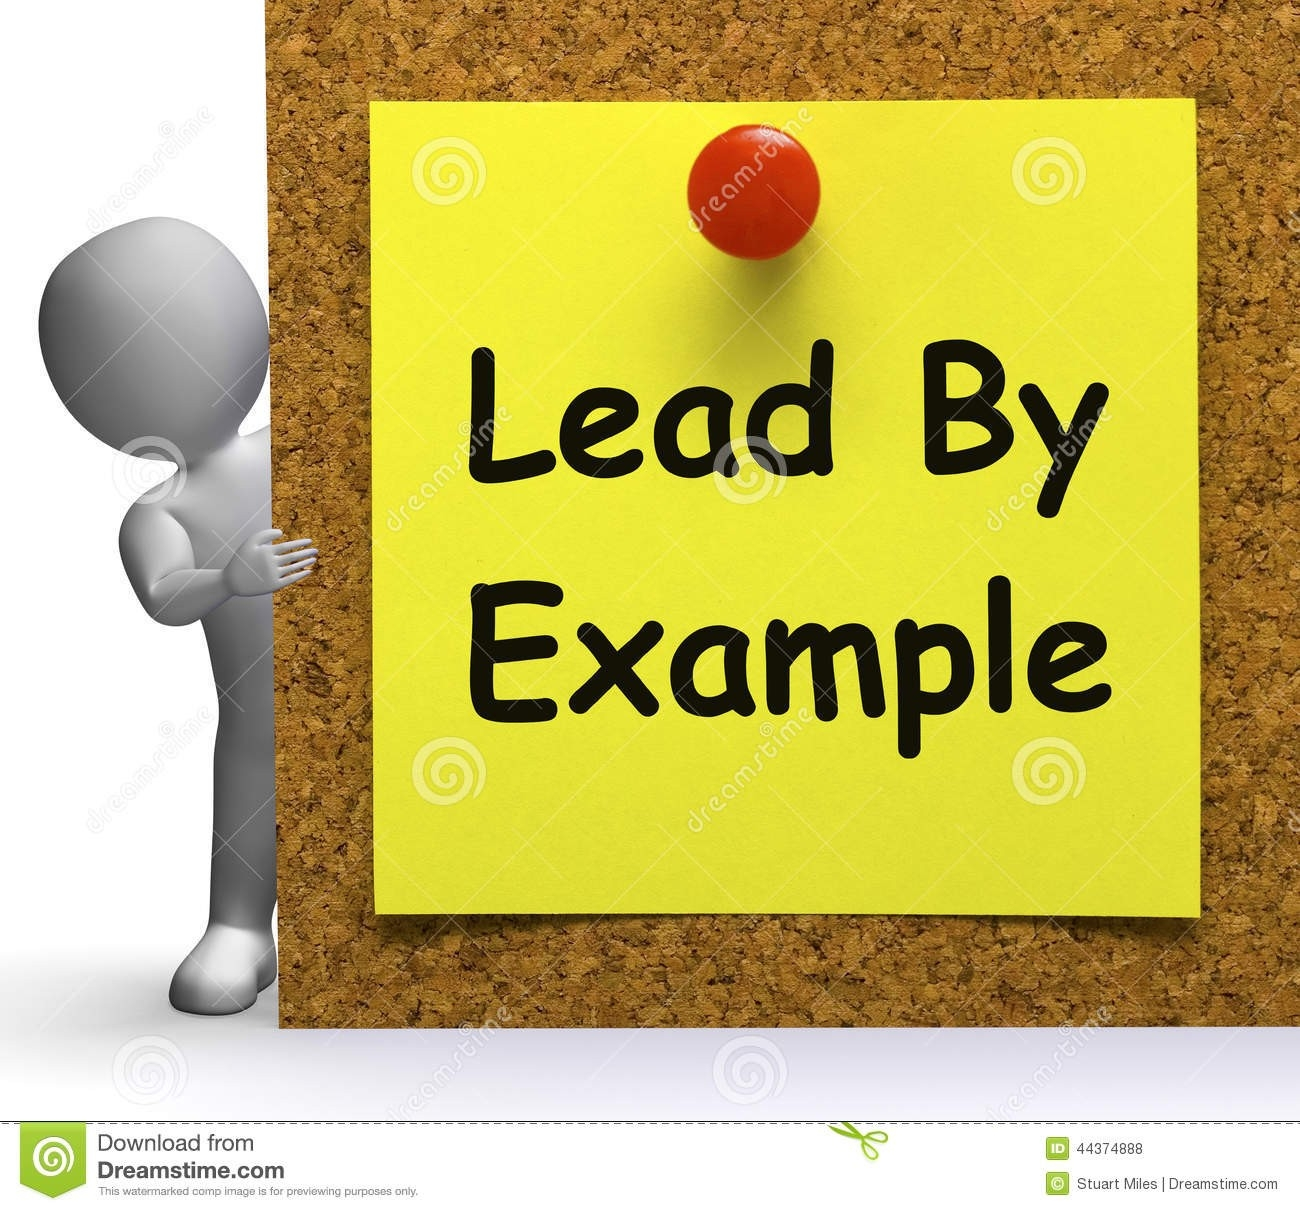 Lead By Example Note Means Mentor Or Inspire Stock Illustration with regard to Lead By Example Clipart 19694